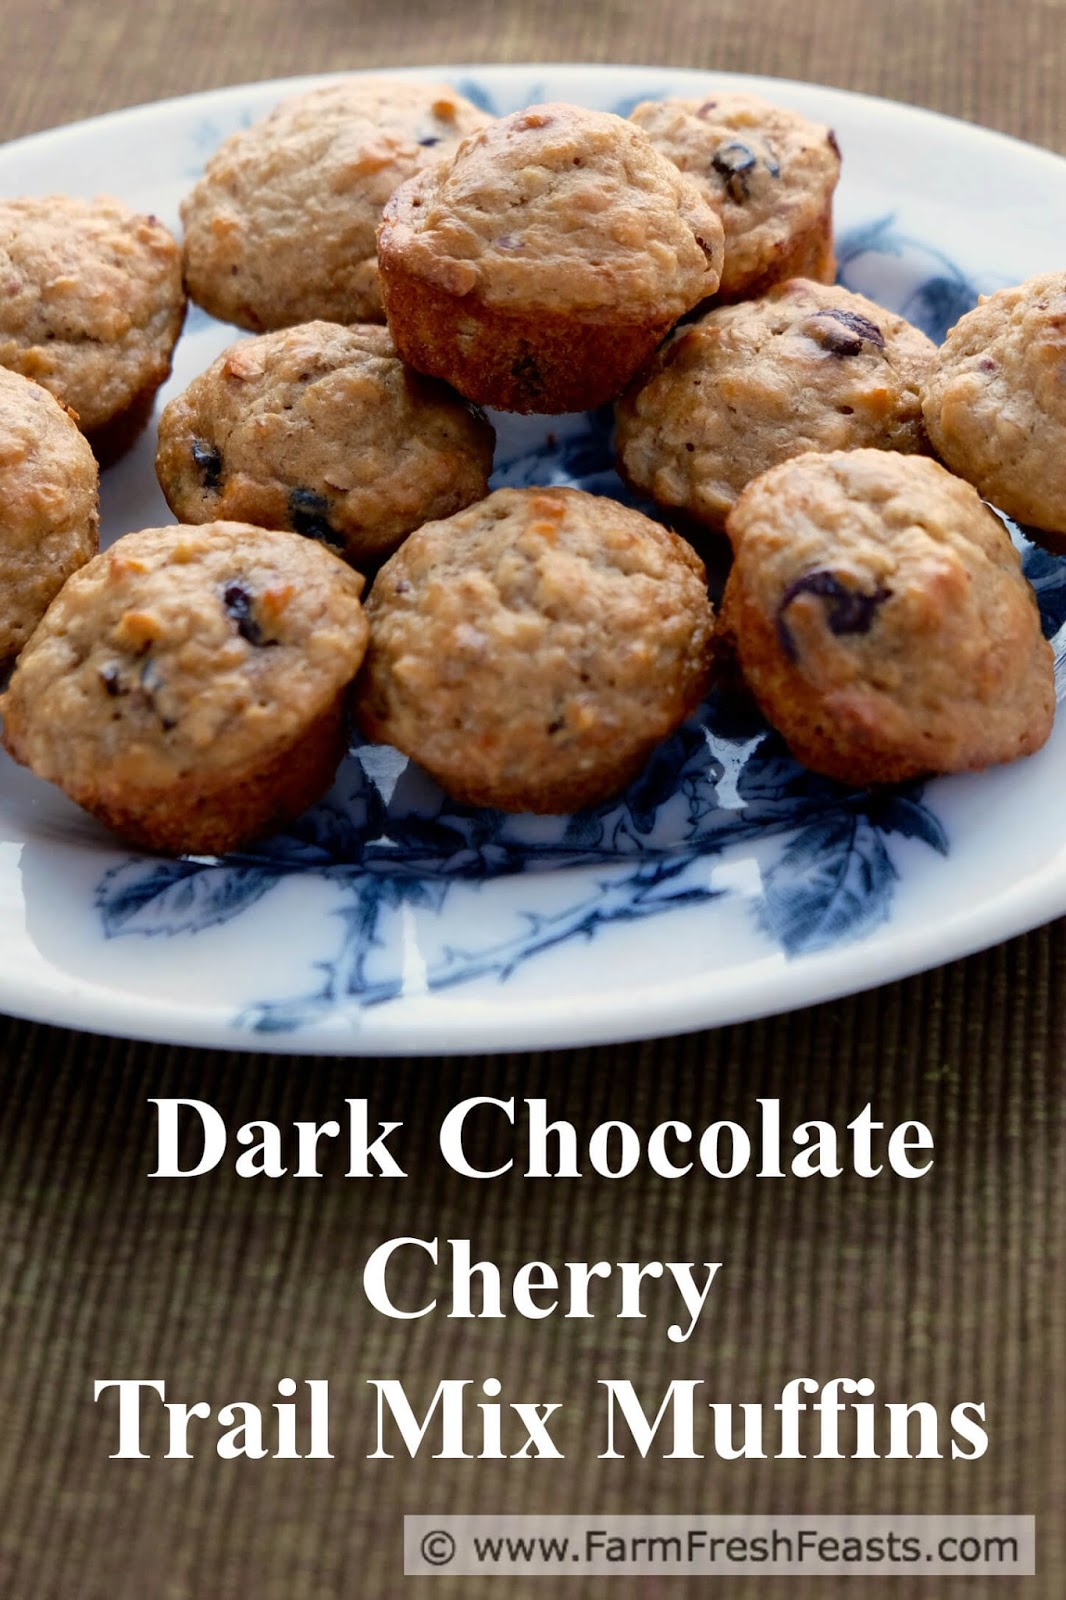 ... Fresh Feasts: Dark Chocolate Cherry Trail Mix Muffins {Monday Muffins